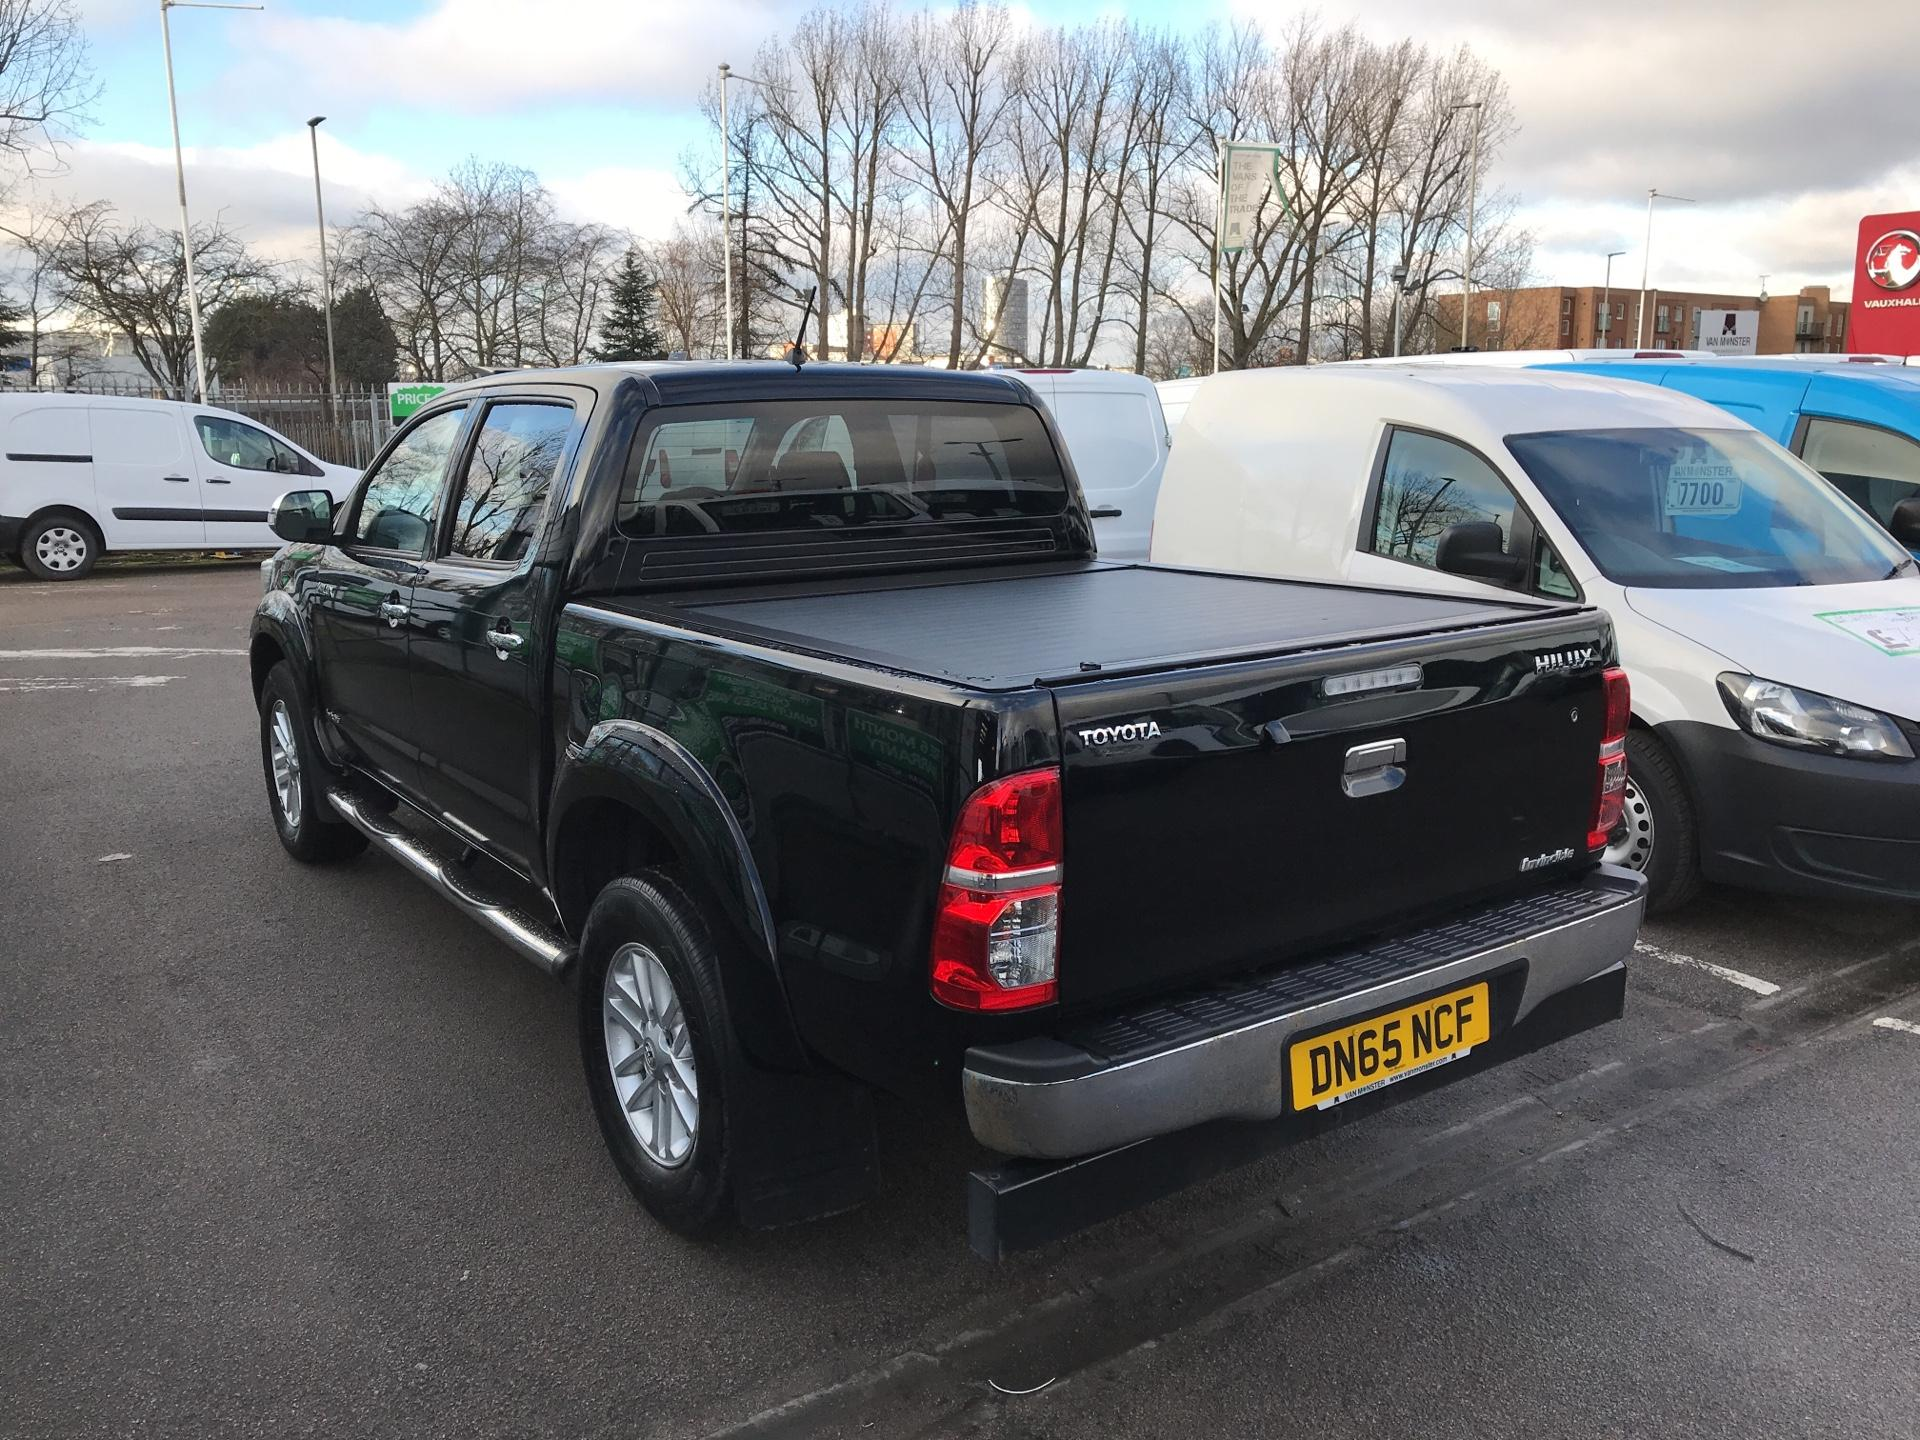 2016 Toyota Hilux DOUBLE CAB PICK UP 3.0 4WD 171 INVINCIBLE EURO 5  (DN65NCF) Image 5